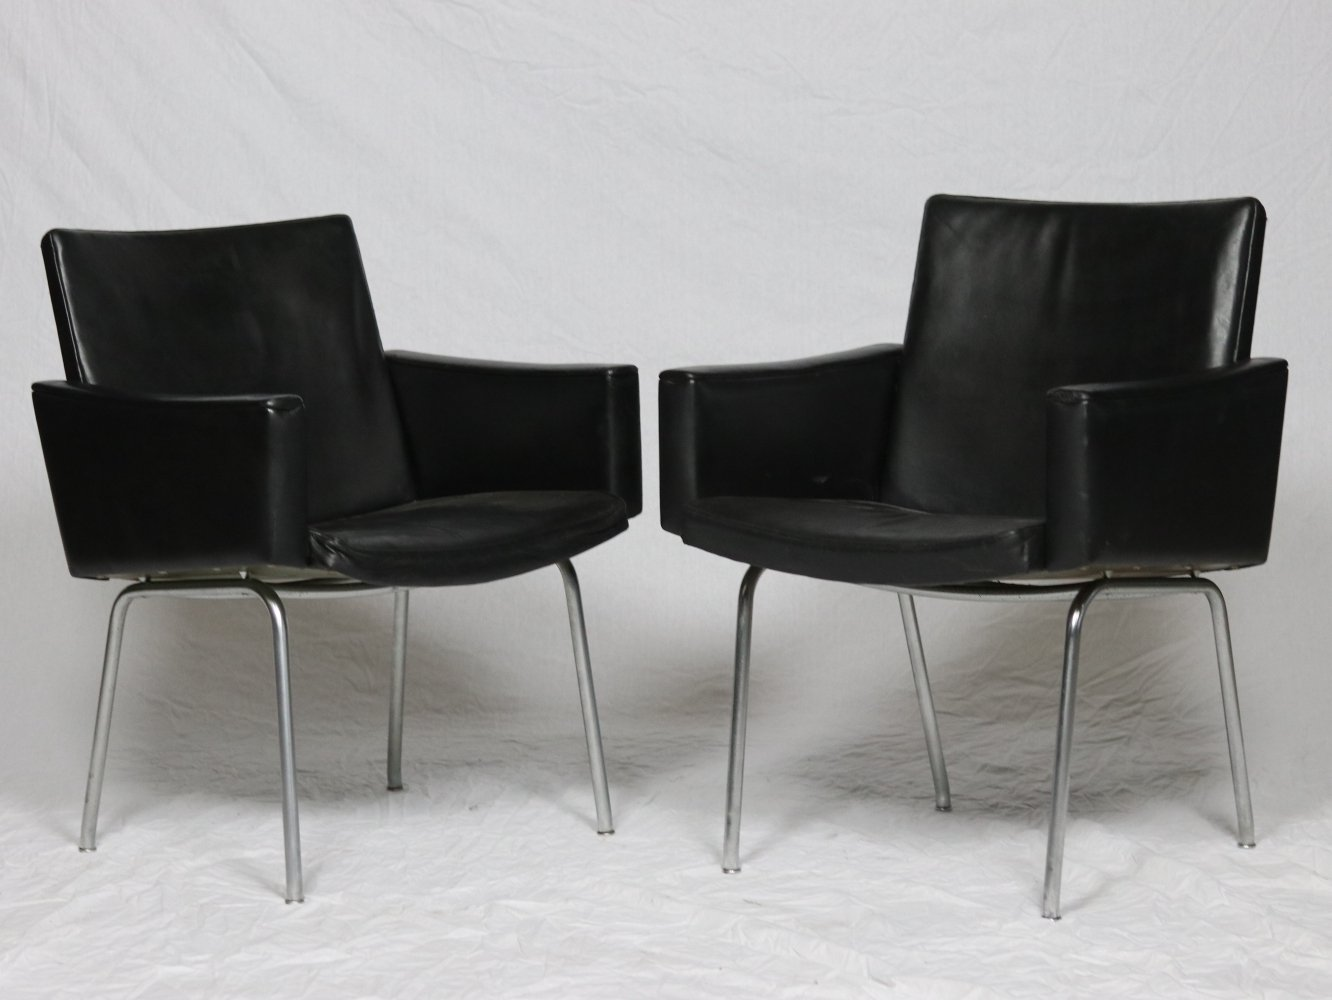 Set of 2 Hans Werner AP-58 Airport Chairs, 1950s